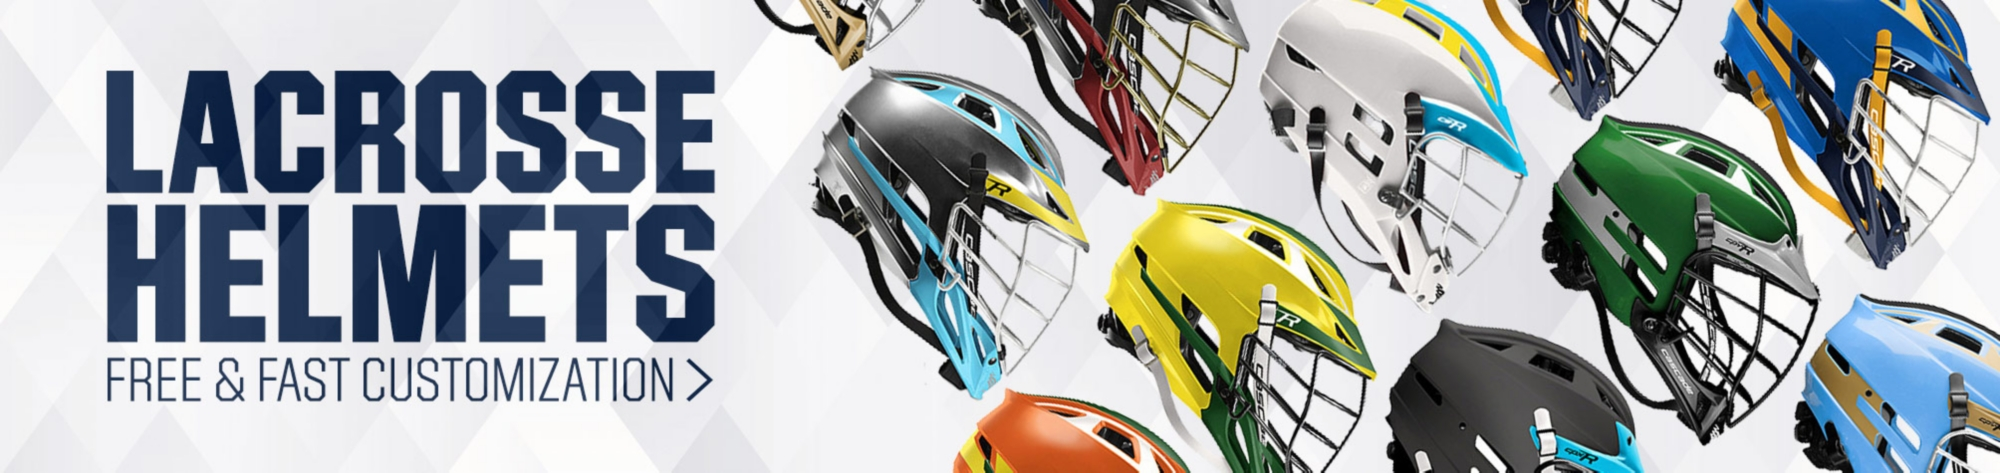 Shop Customized Lacrosse Helmets